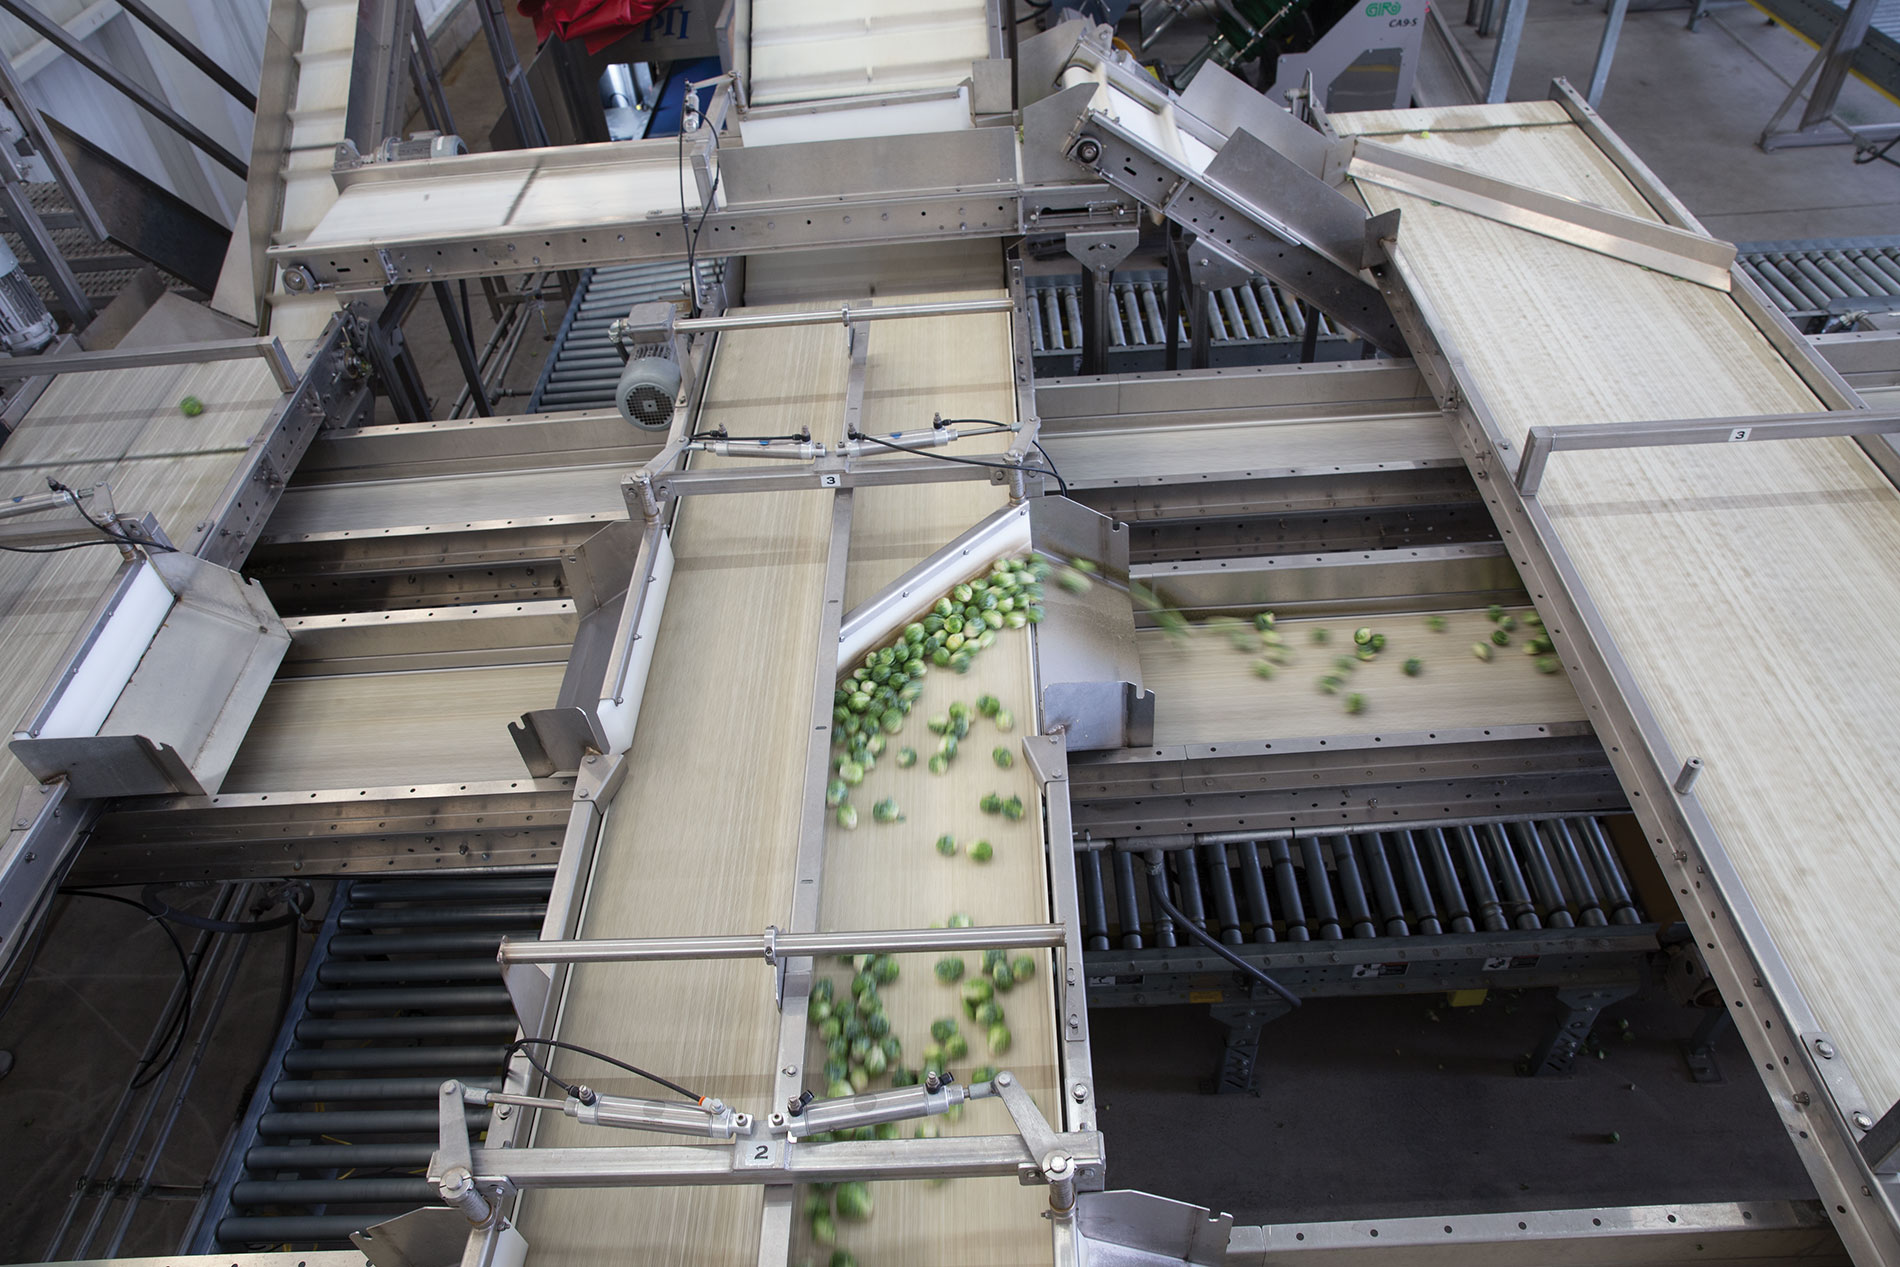 Bonipak's Brussels sprouts sortation system employs sizing belts that transfer the product to appropriate boxing locations.